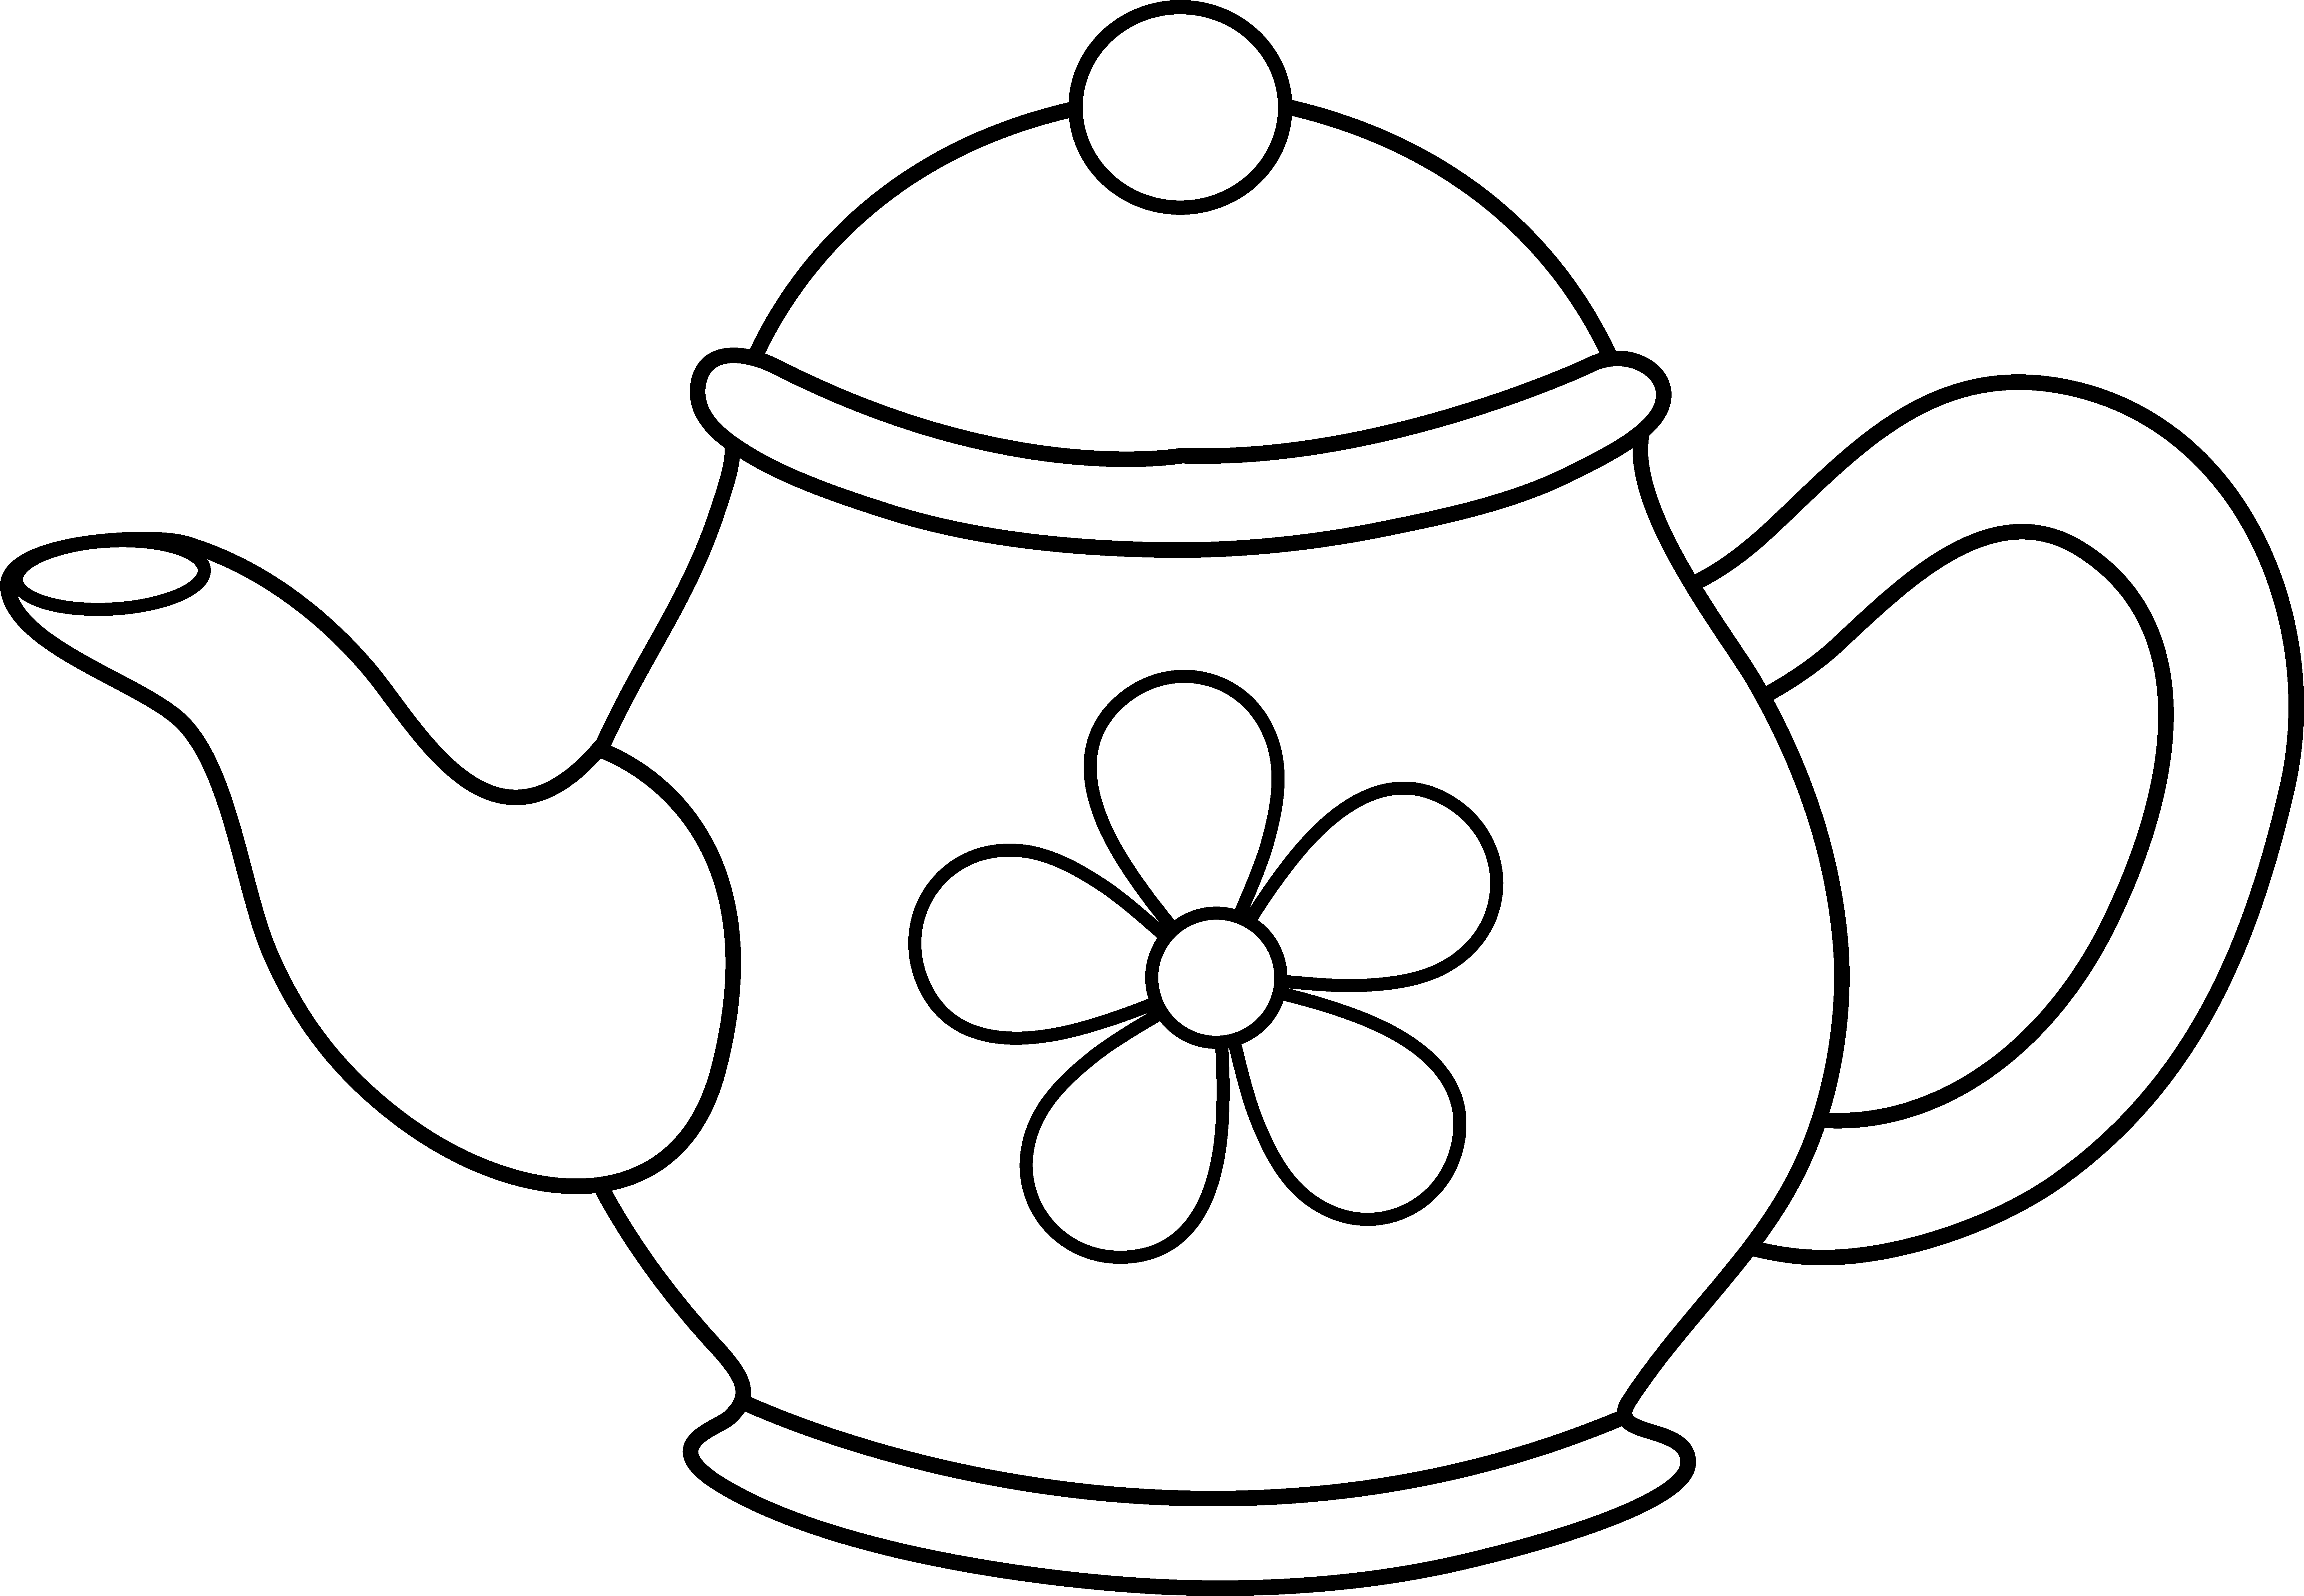 teapot printable coloring pages | Printable Teapot Coloring Pages - Coloring Home